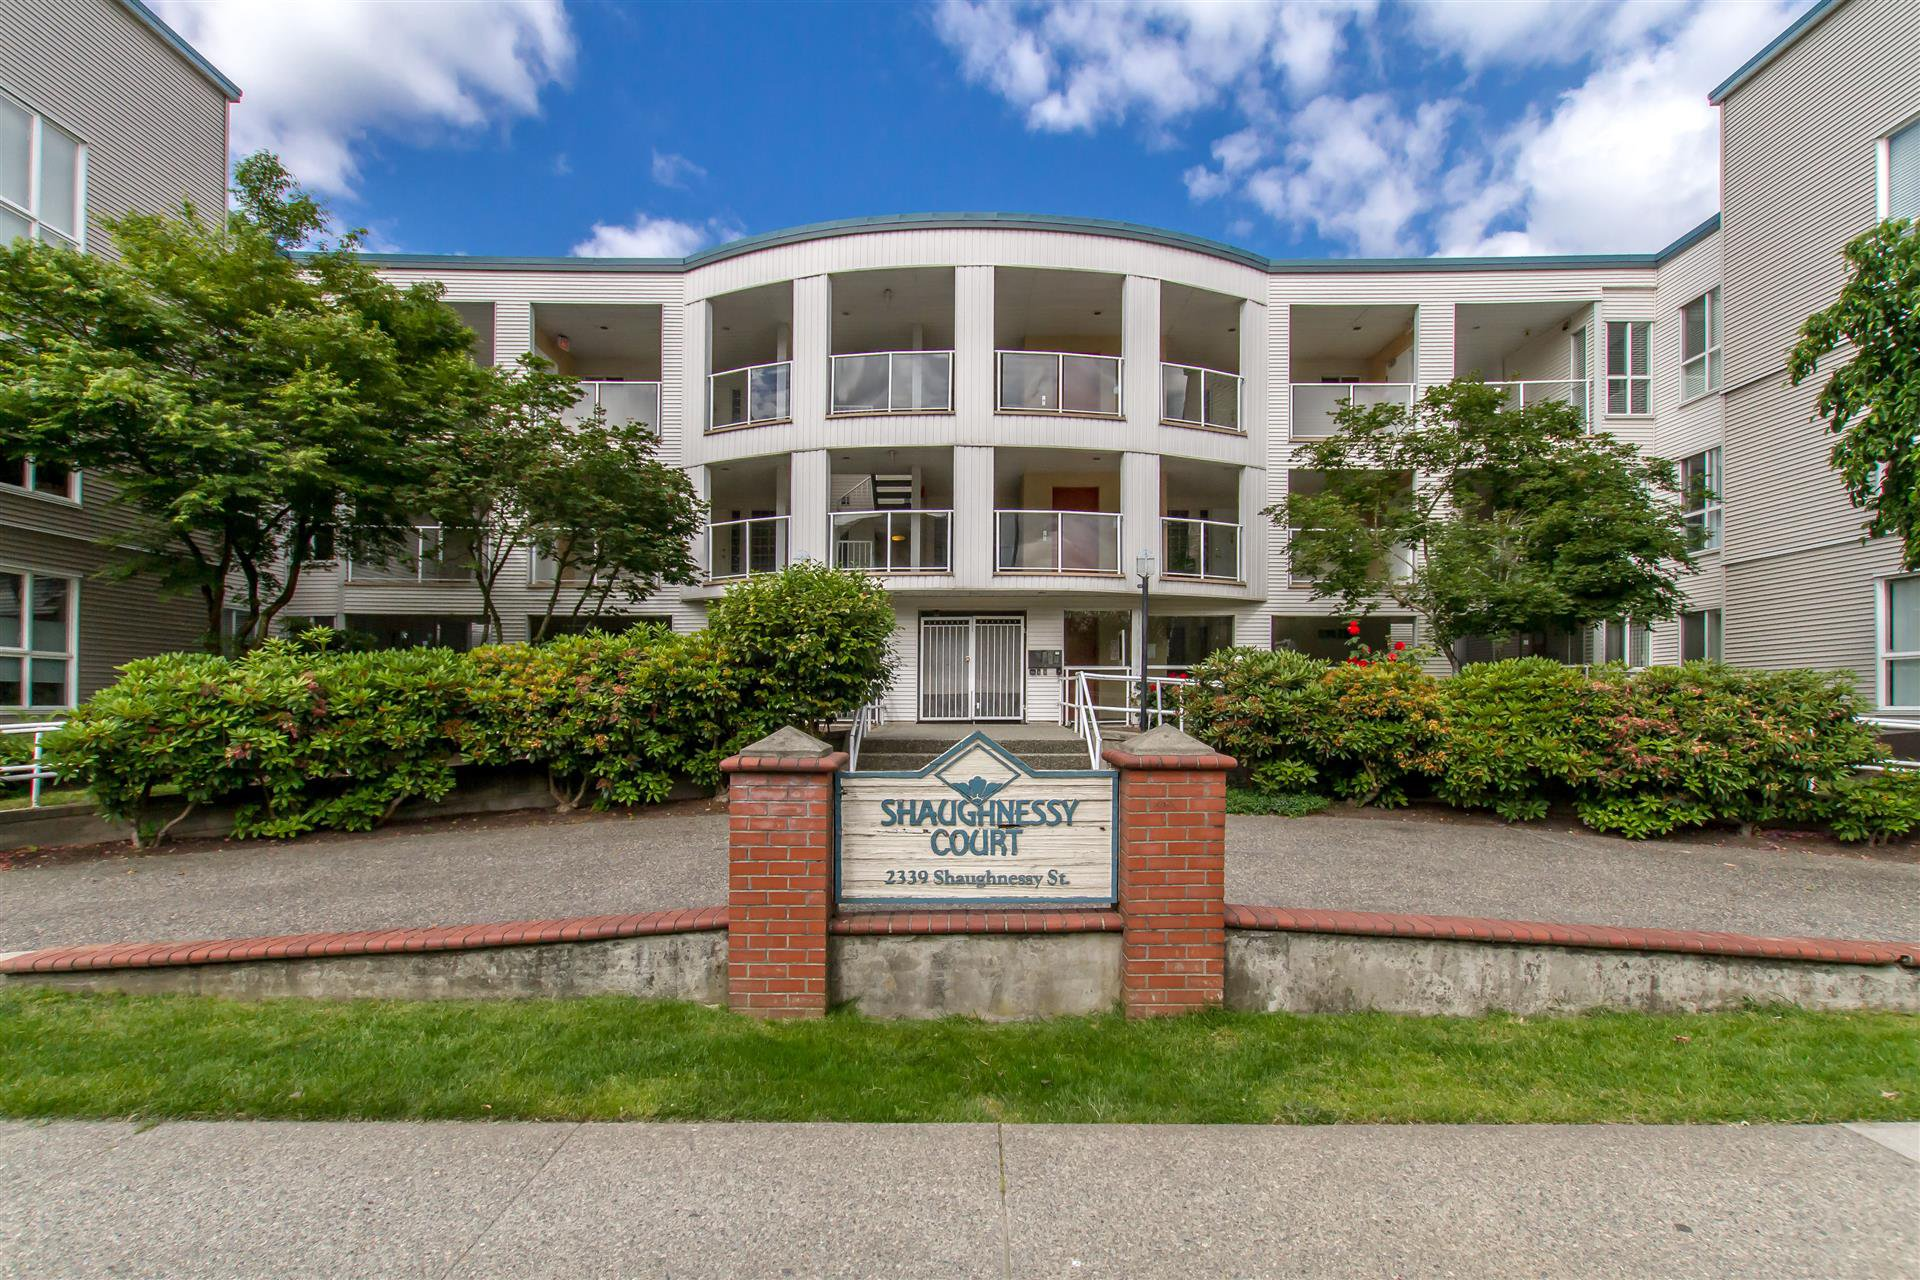 "Main Photo: 204 2339 SHAUGHNESSY Street in Port Coquitlam: Central Pt Coquitlam Condo for sale in ""SHAUGHNESSY COURT"" : MLS®# R2371838"